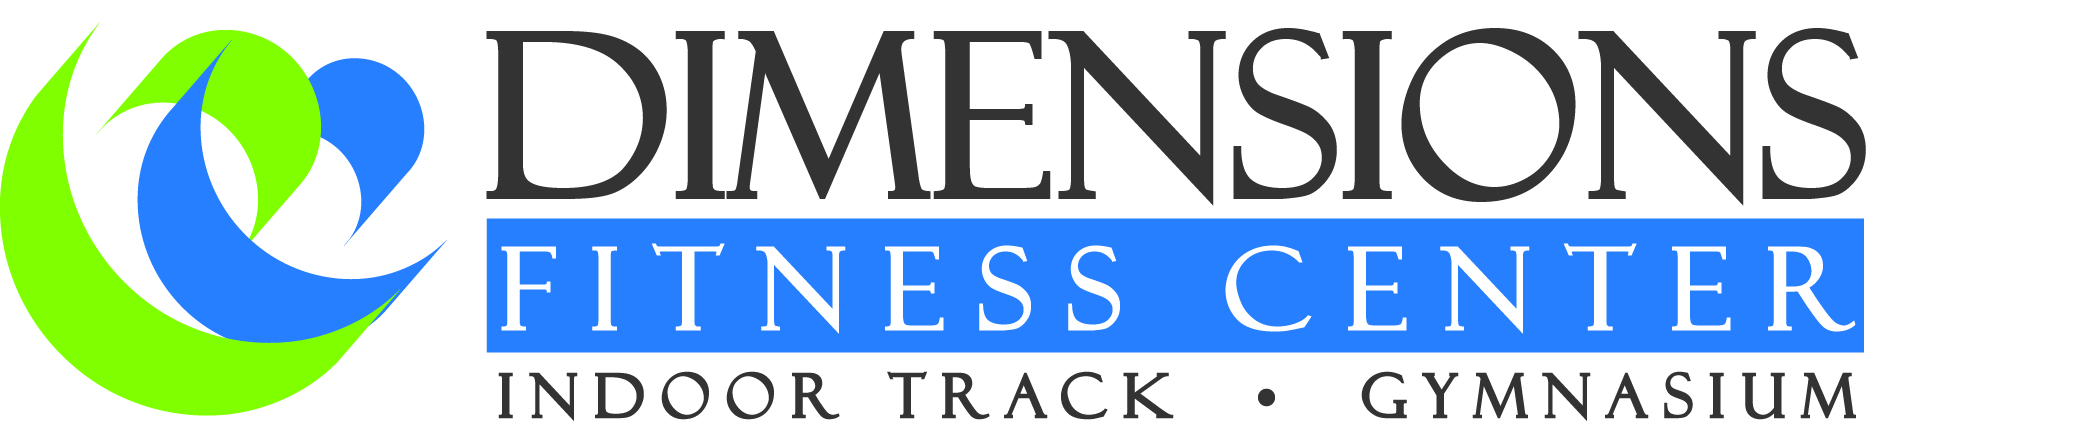 Dimensions Fitness Center logo